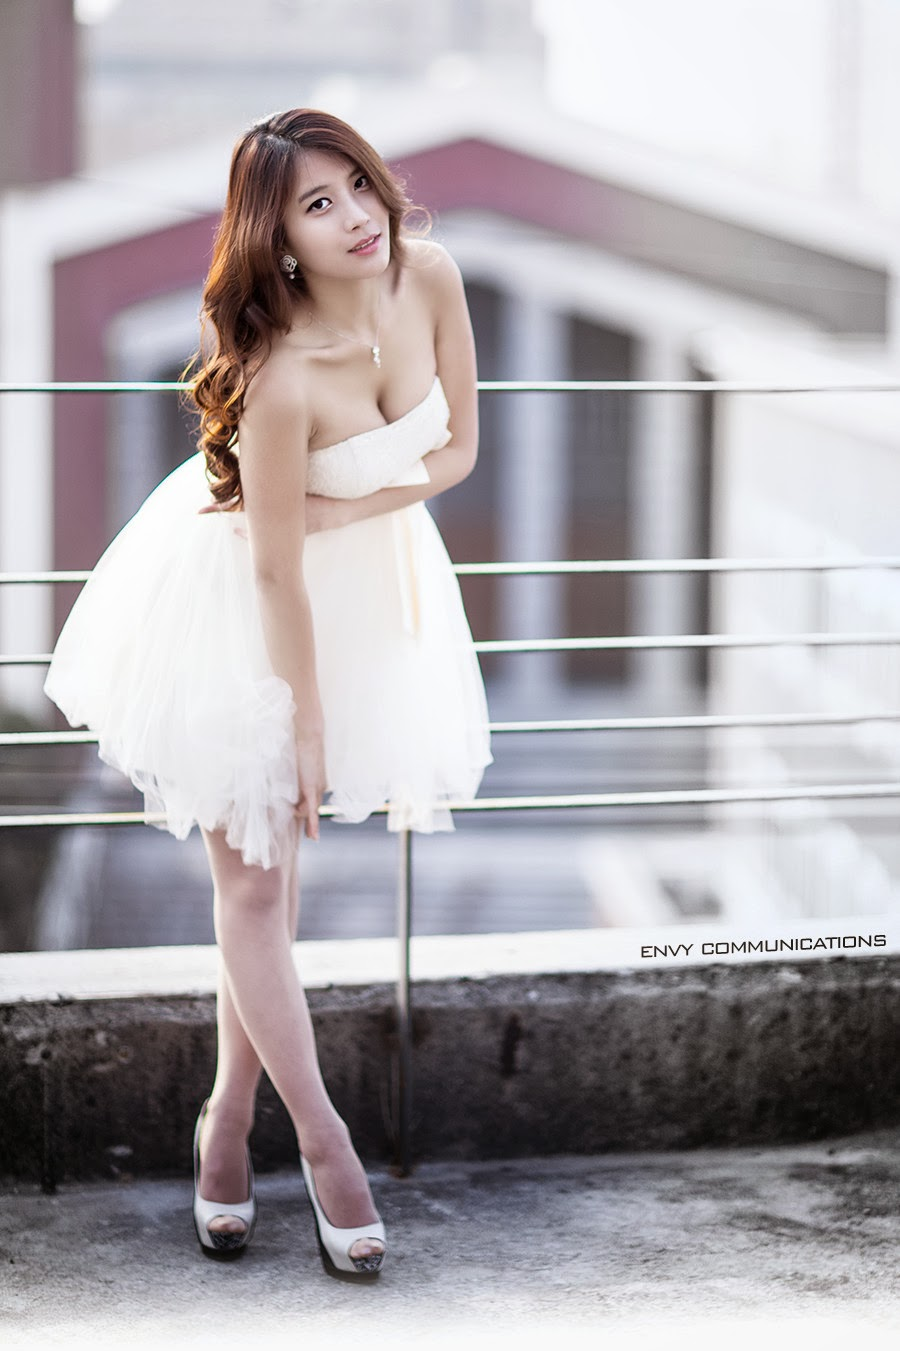 3 Cha Jung Ah - Up On The Roof - very cute asian girl-girlcute4u.blogspot.com